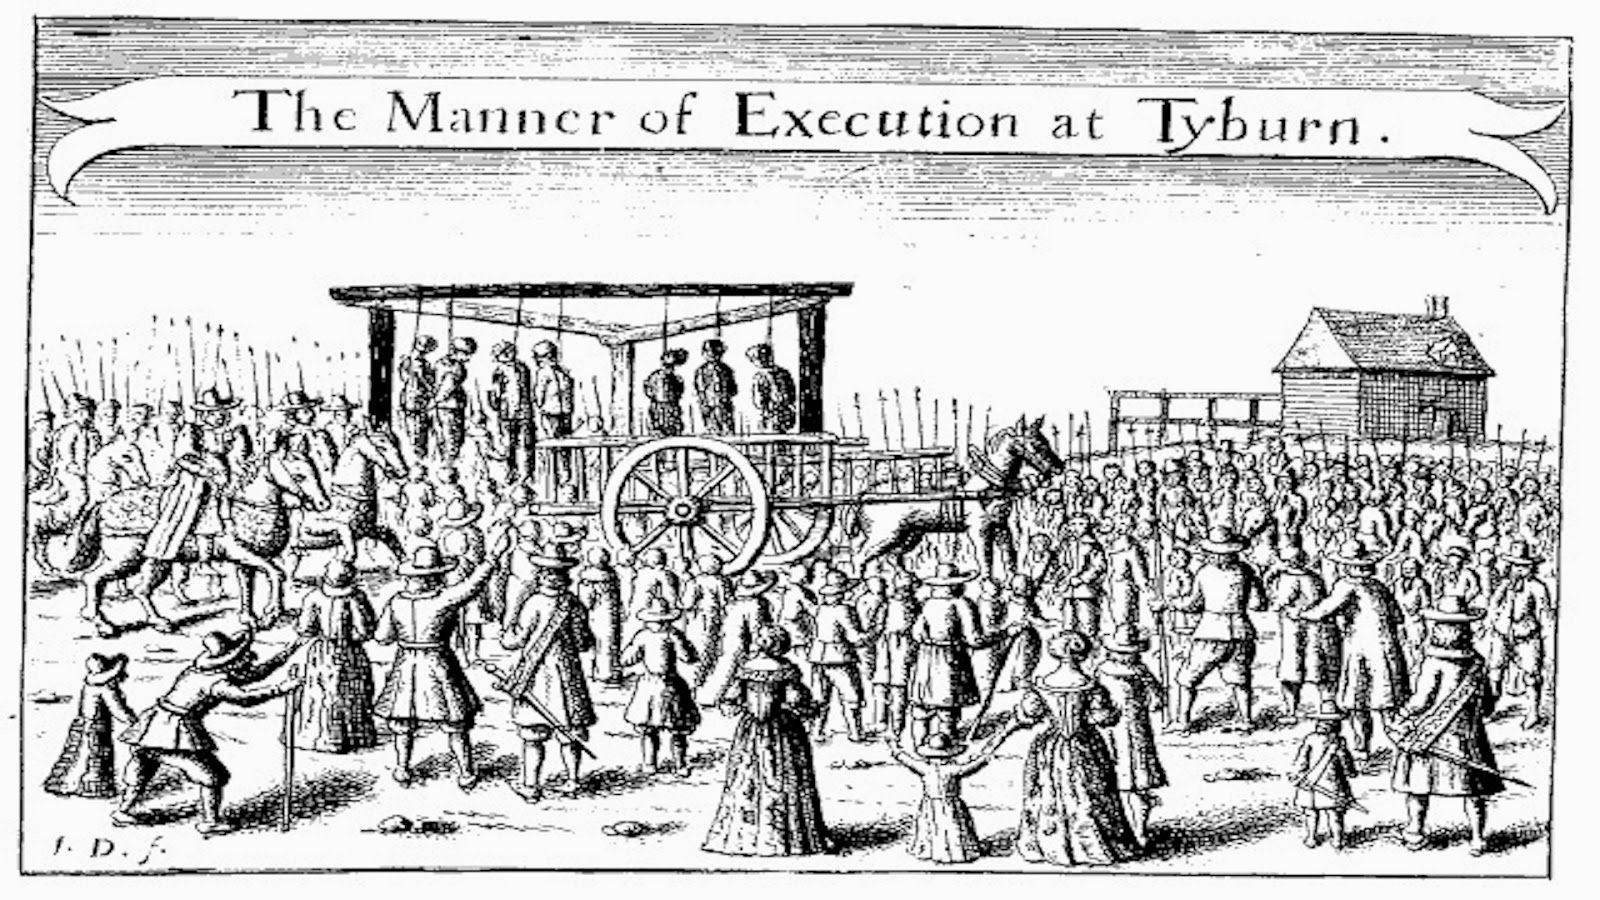 The_Manner_of_Execution_at_Tyburn.jpg (1600×900)